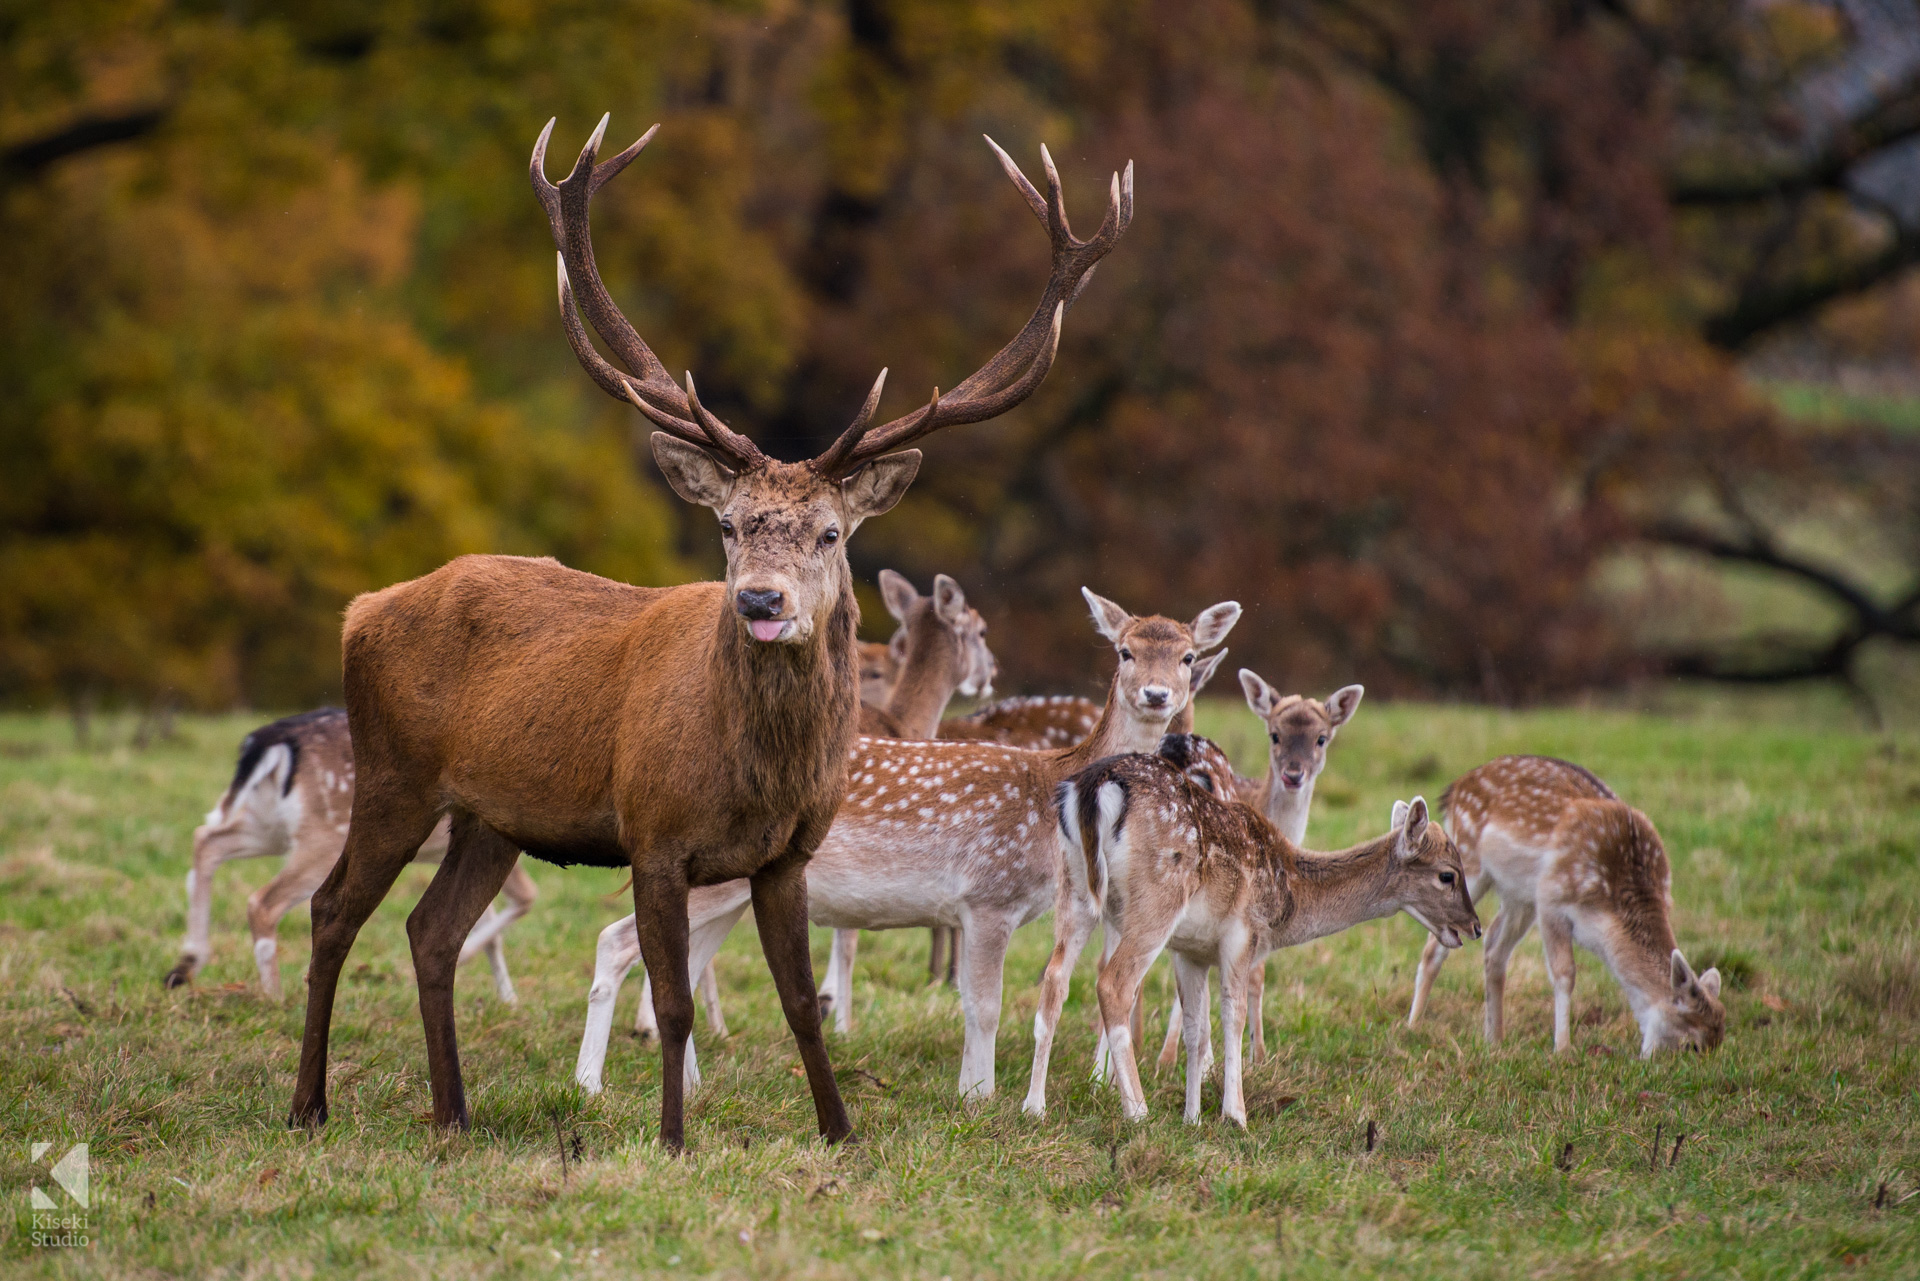 Studley Royal Park Deer eating together as a group